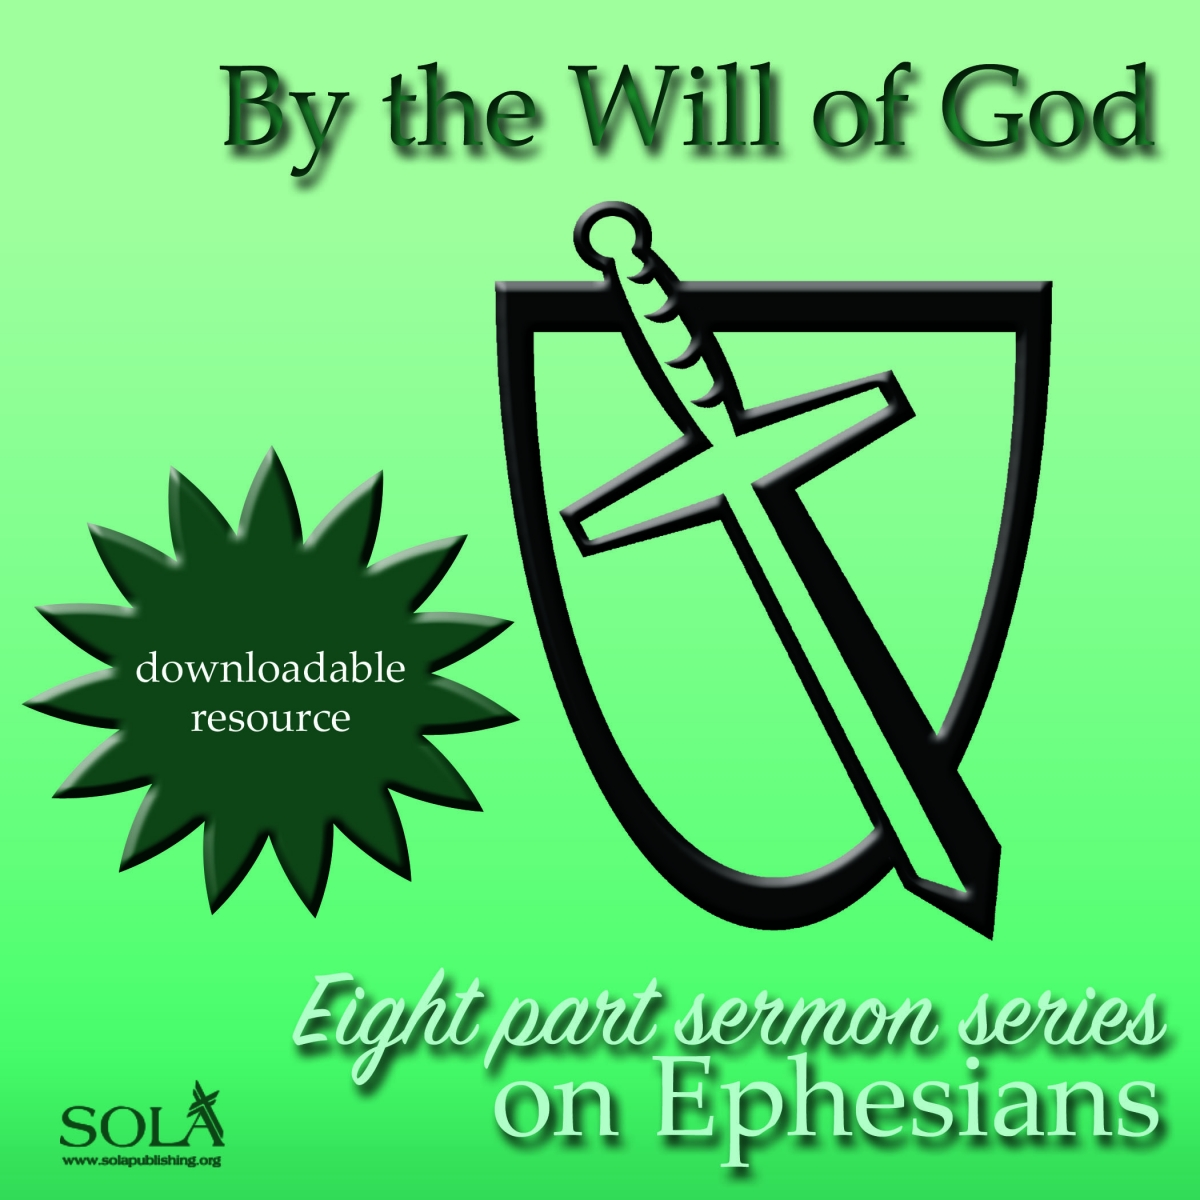 By the Will of God (PDF)